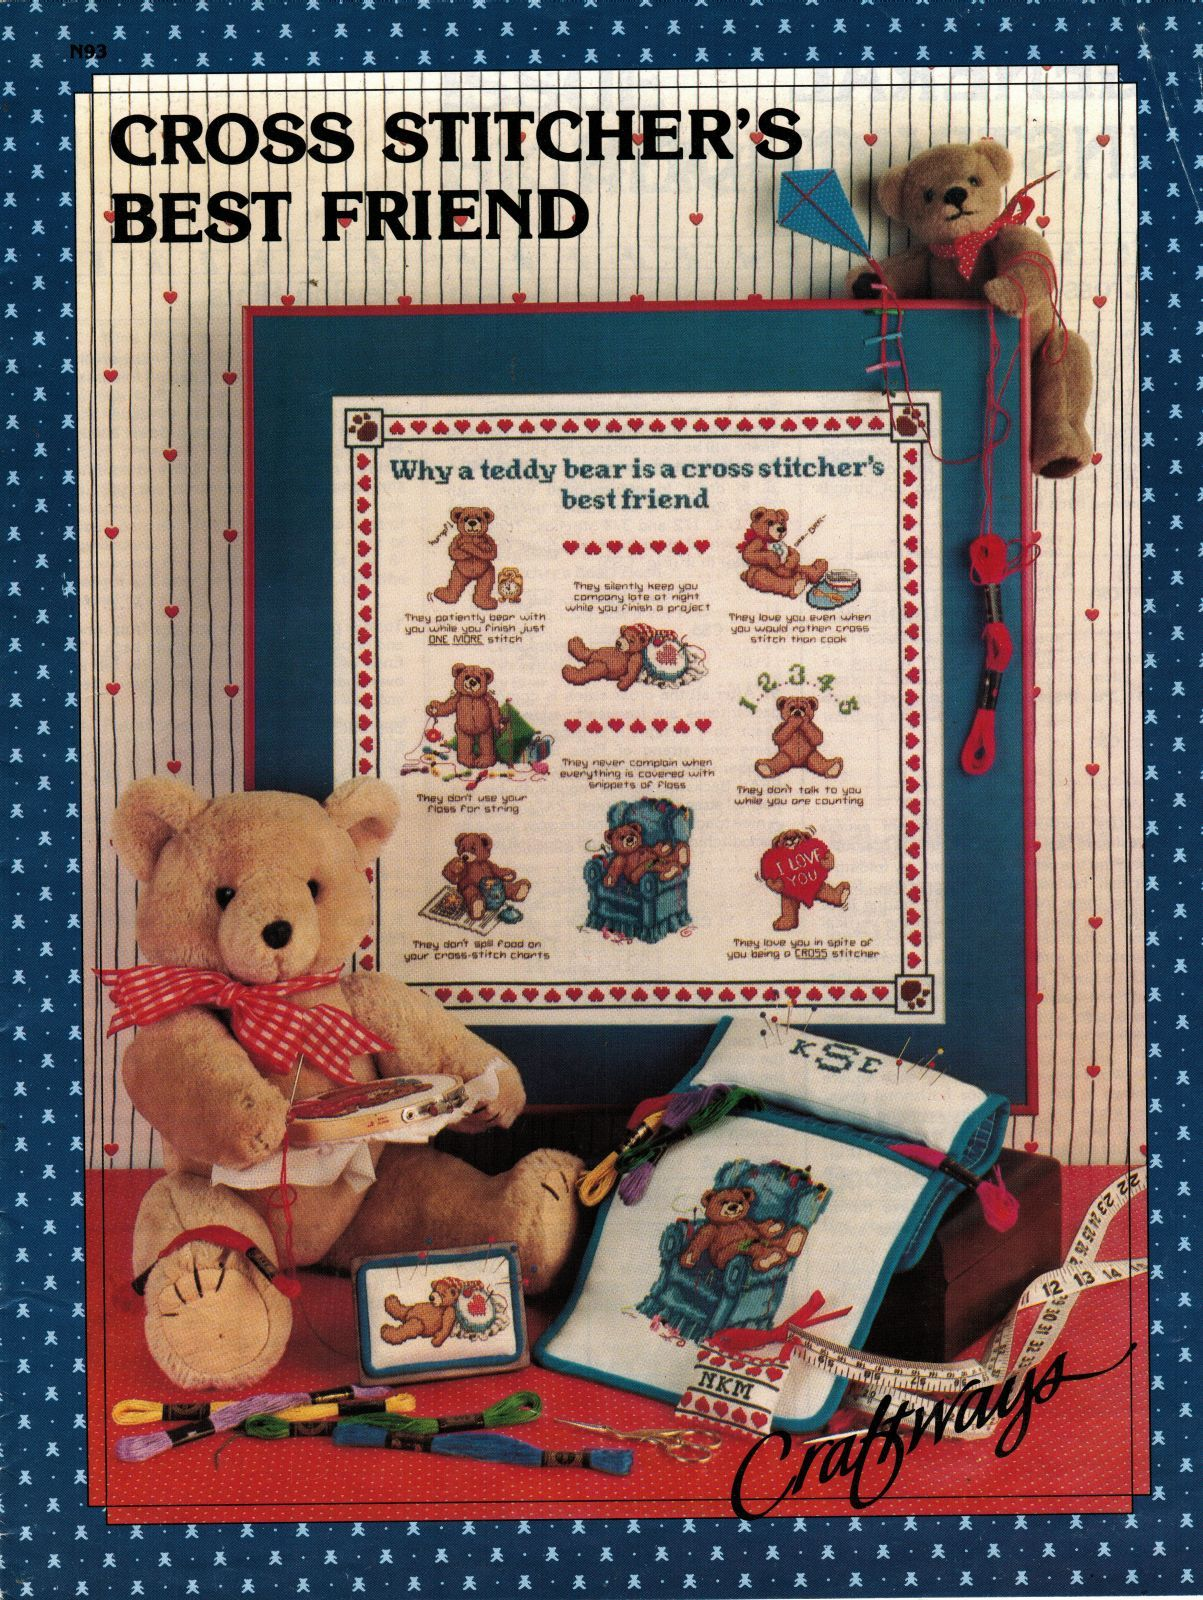 Primary image for Cross Stitch Stitcher's Best Teddy Bear Friend Caddy Floss Sew Box Apron PATTERN